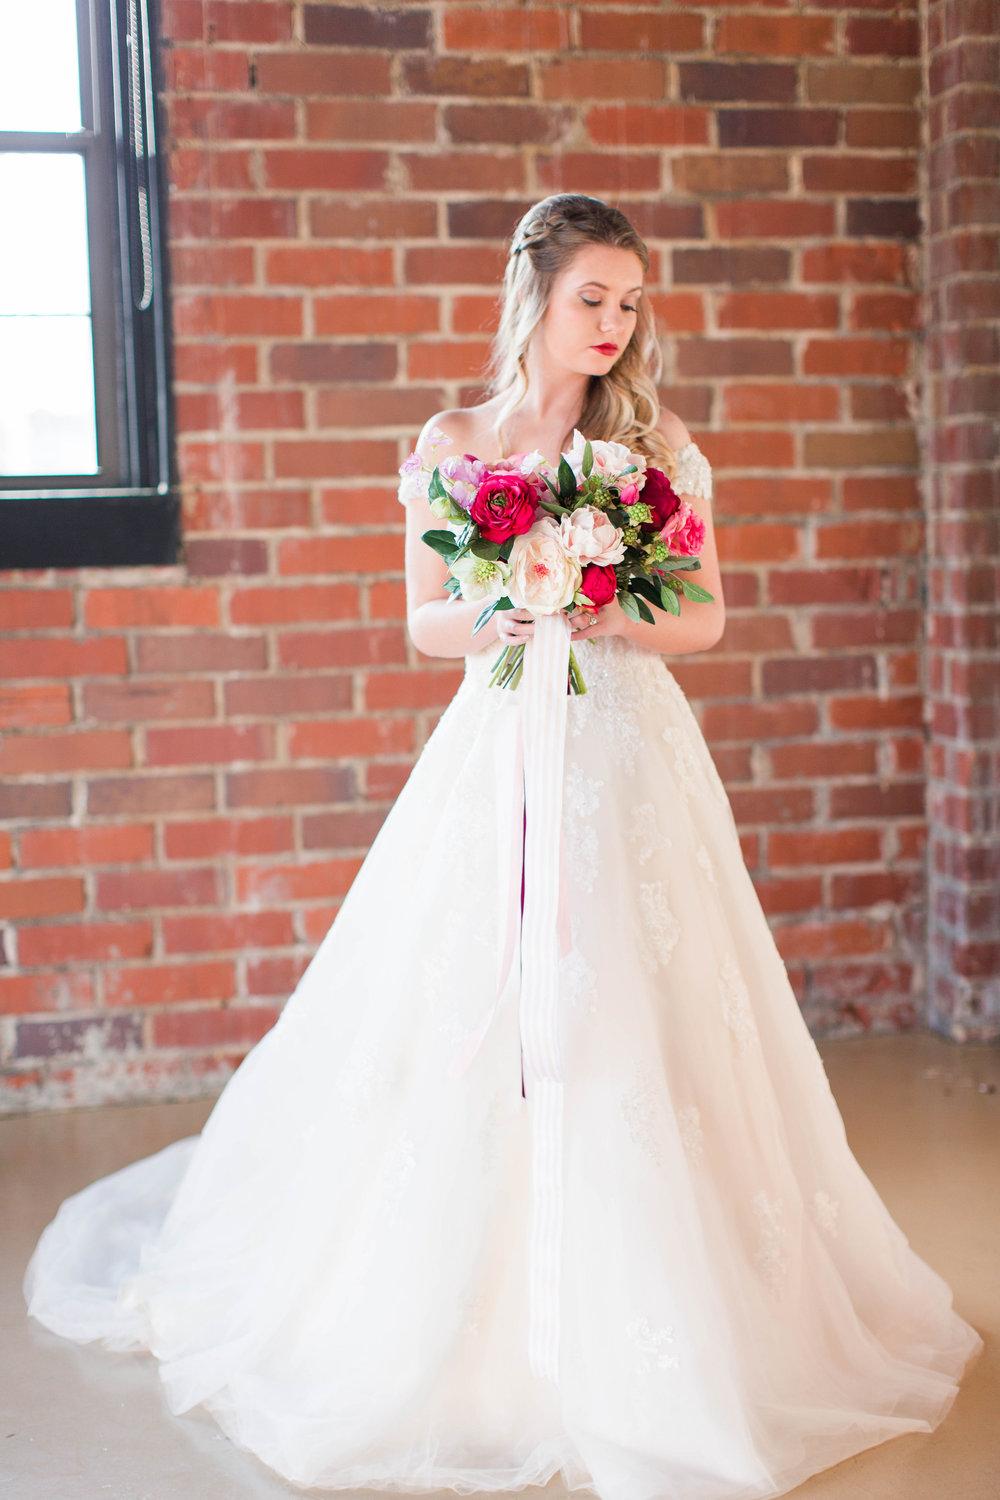 afloral-fake-flower-wedding-ivory-and-beau-bridal-boutique-maggie-sottero-saffron-the-hall-on-vine-wedding-statesboro-wedding-savannah-wedding-kristian-designs-rachel-strickland-photography-savannah-bridal-southern-bride-savannah-bride-2.jpg